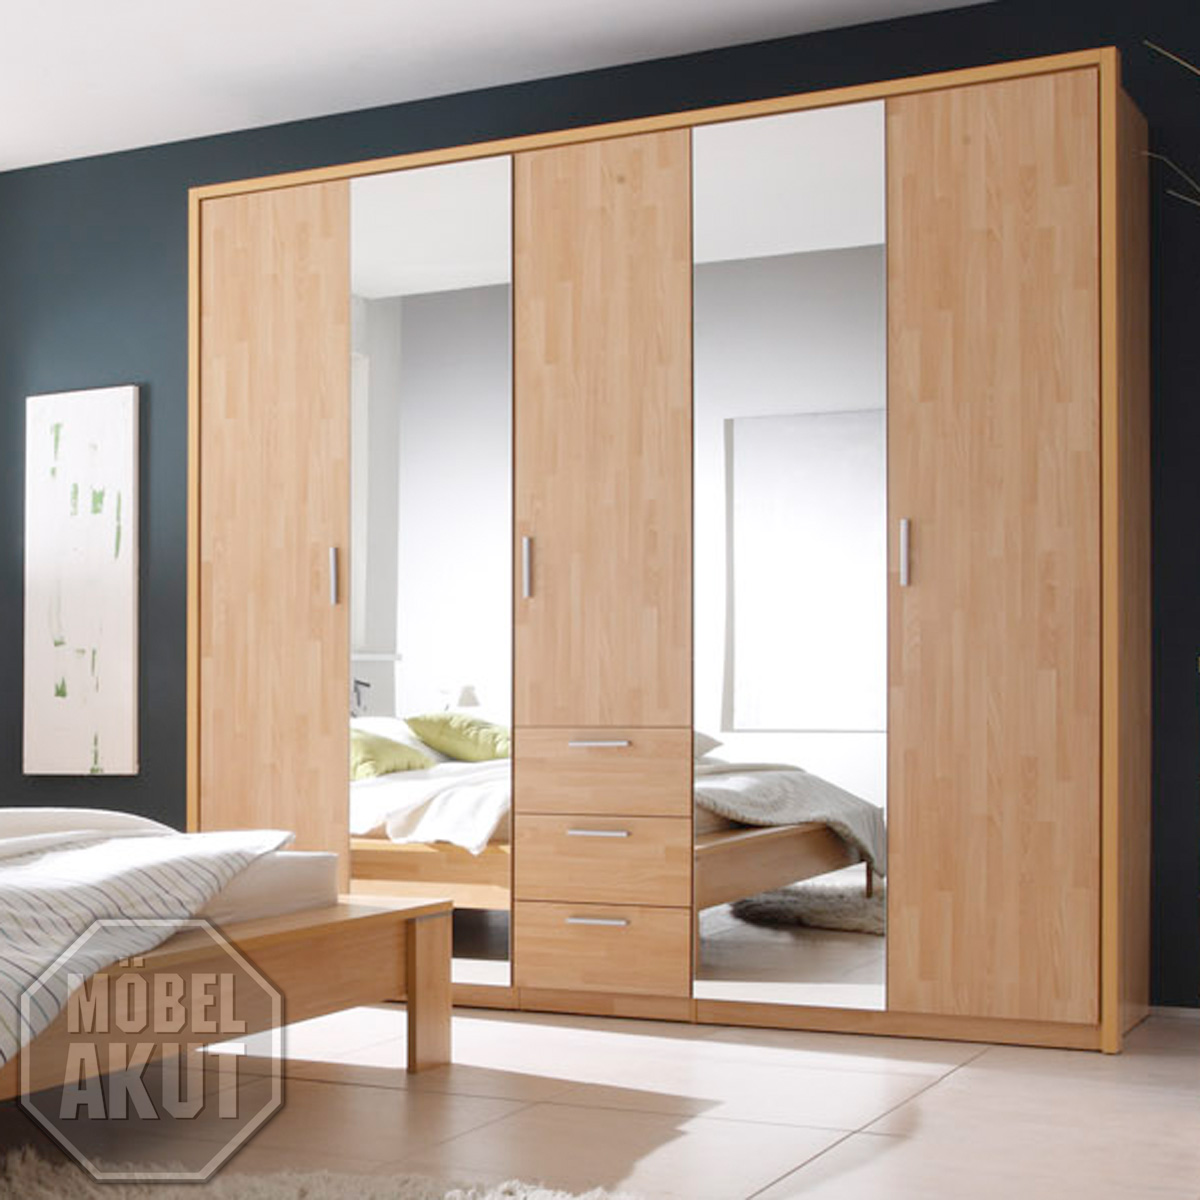 kleiderschrank sidra schrank buche parkett b 229 cm neu ebay. Black Bedroom Furniture Sets. Home Design Ideas